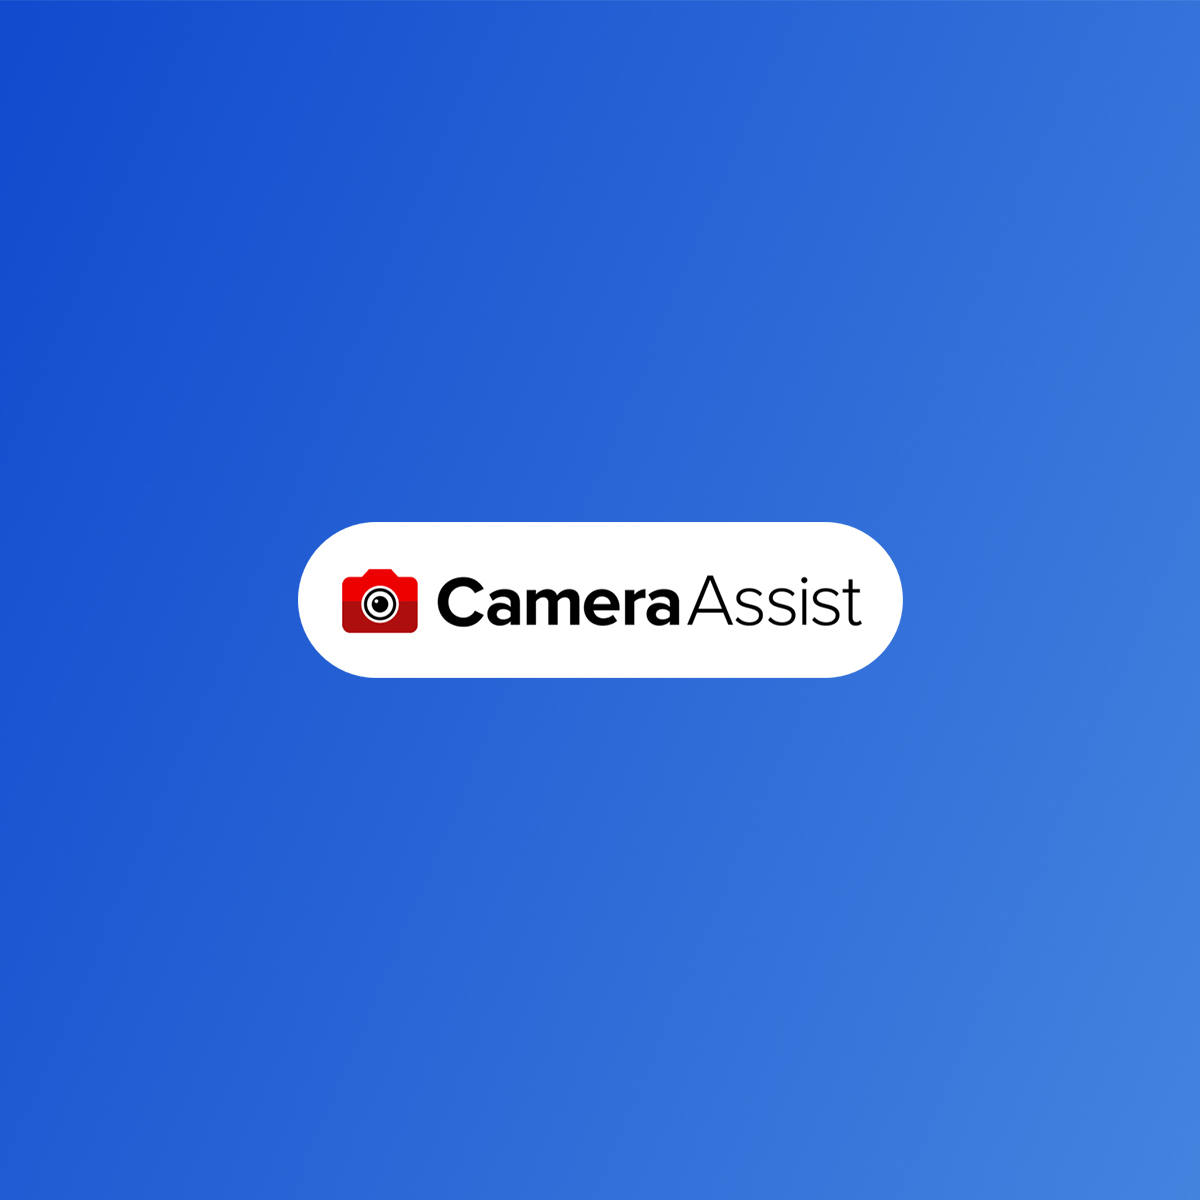 Camera Assist logo